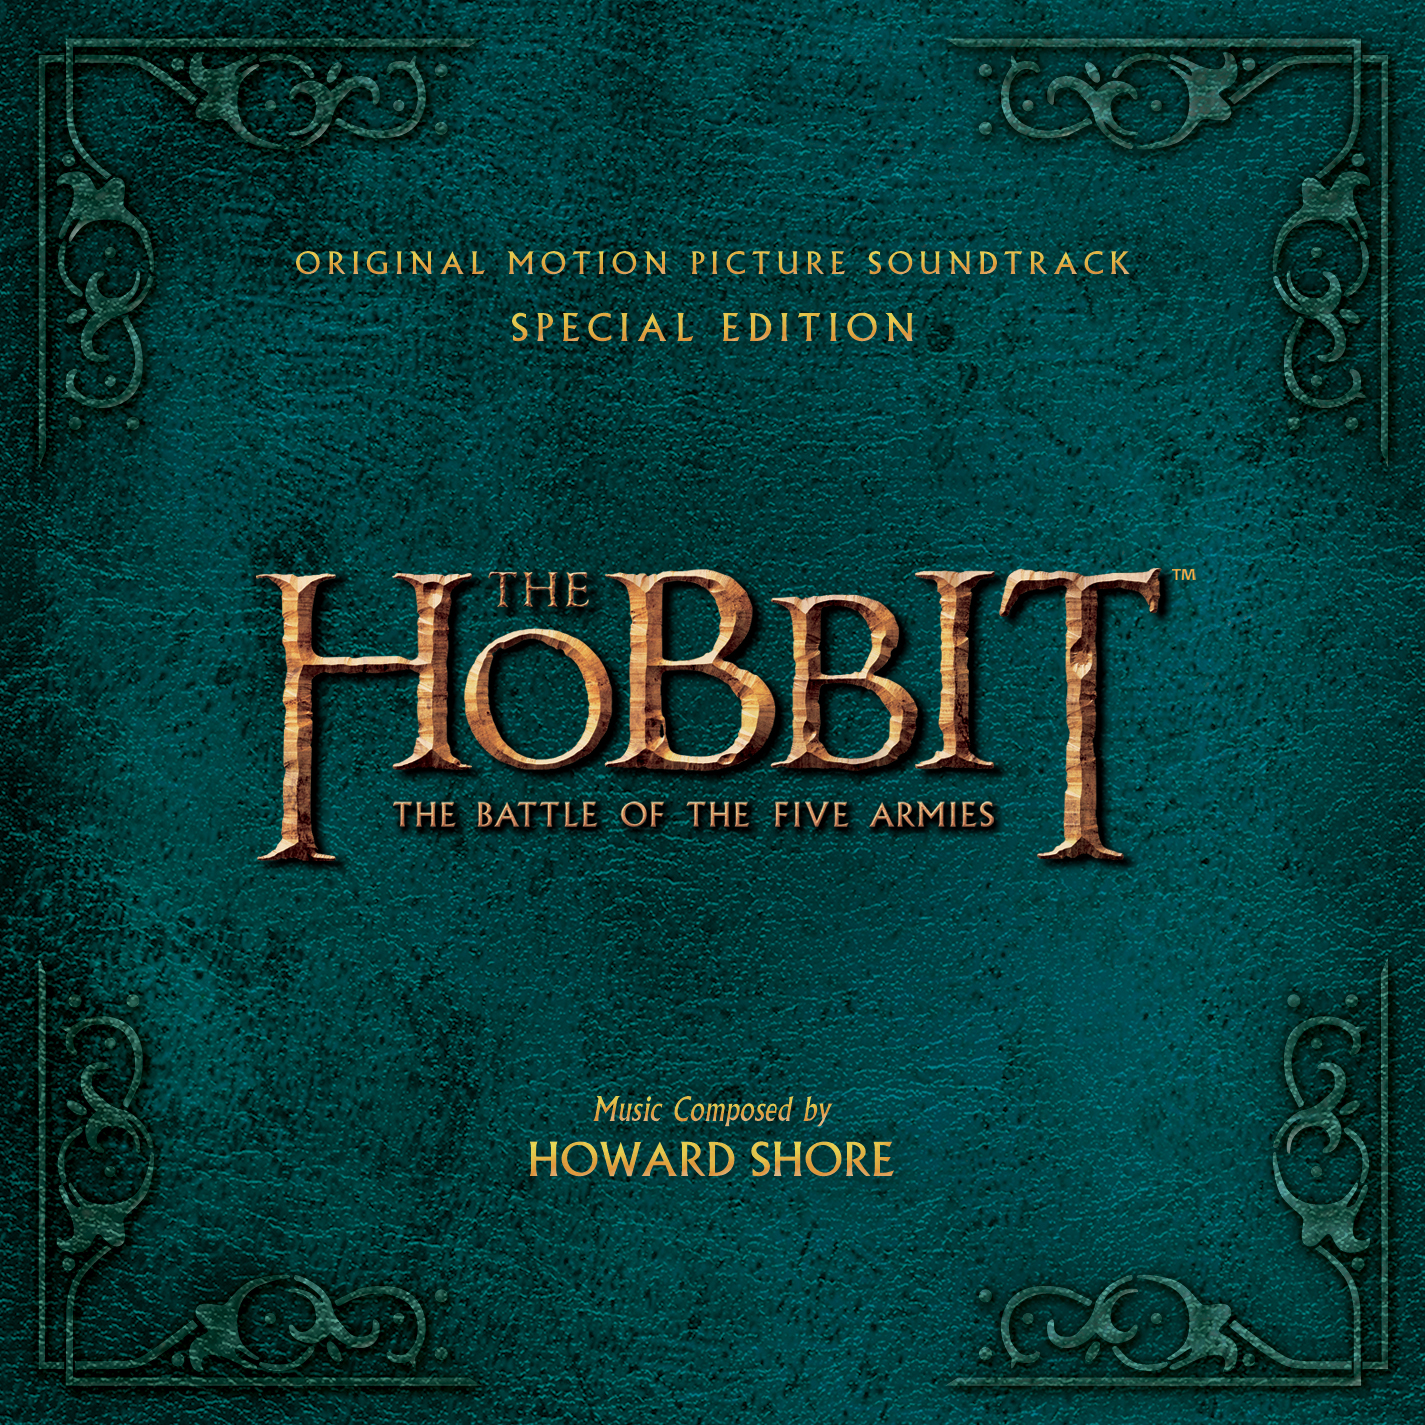 The Hobbit The Battle of the Five Armies-soundtrack-17NOVEMBRO2014